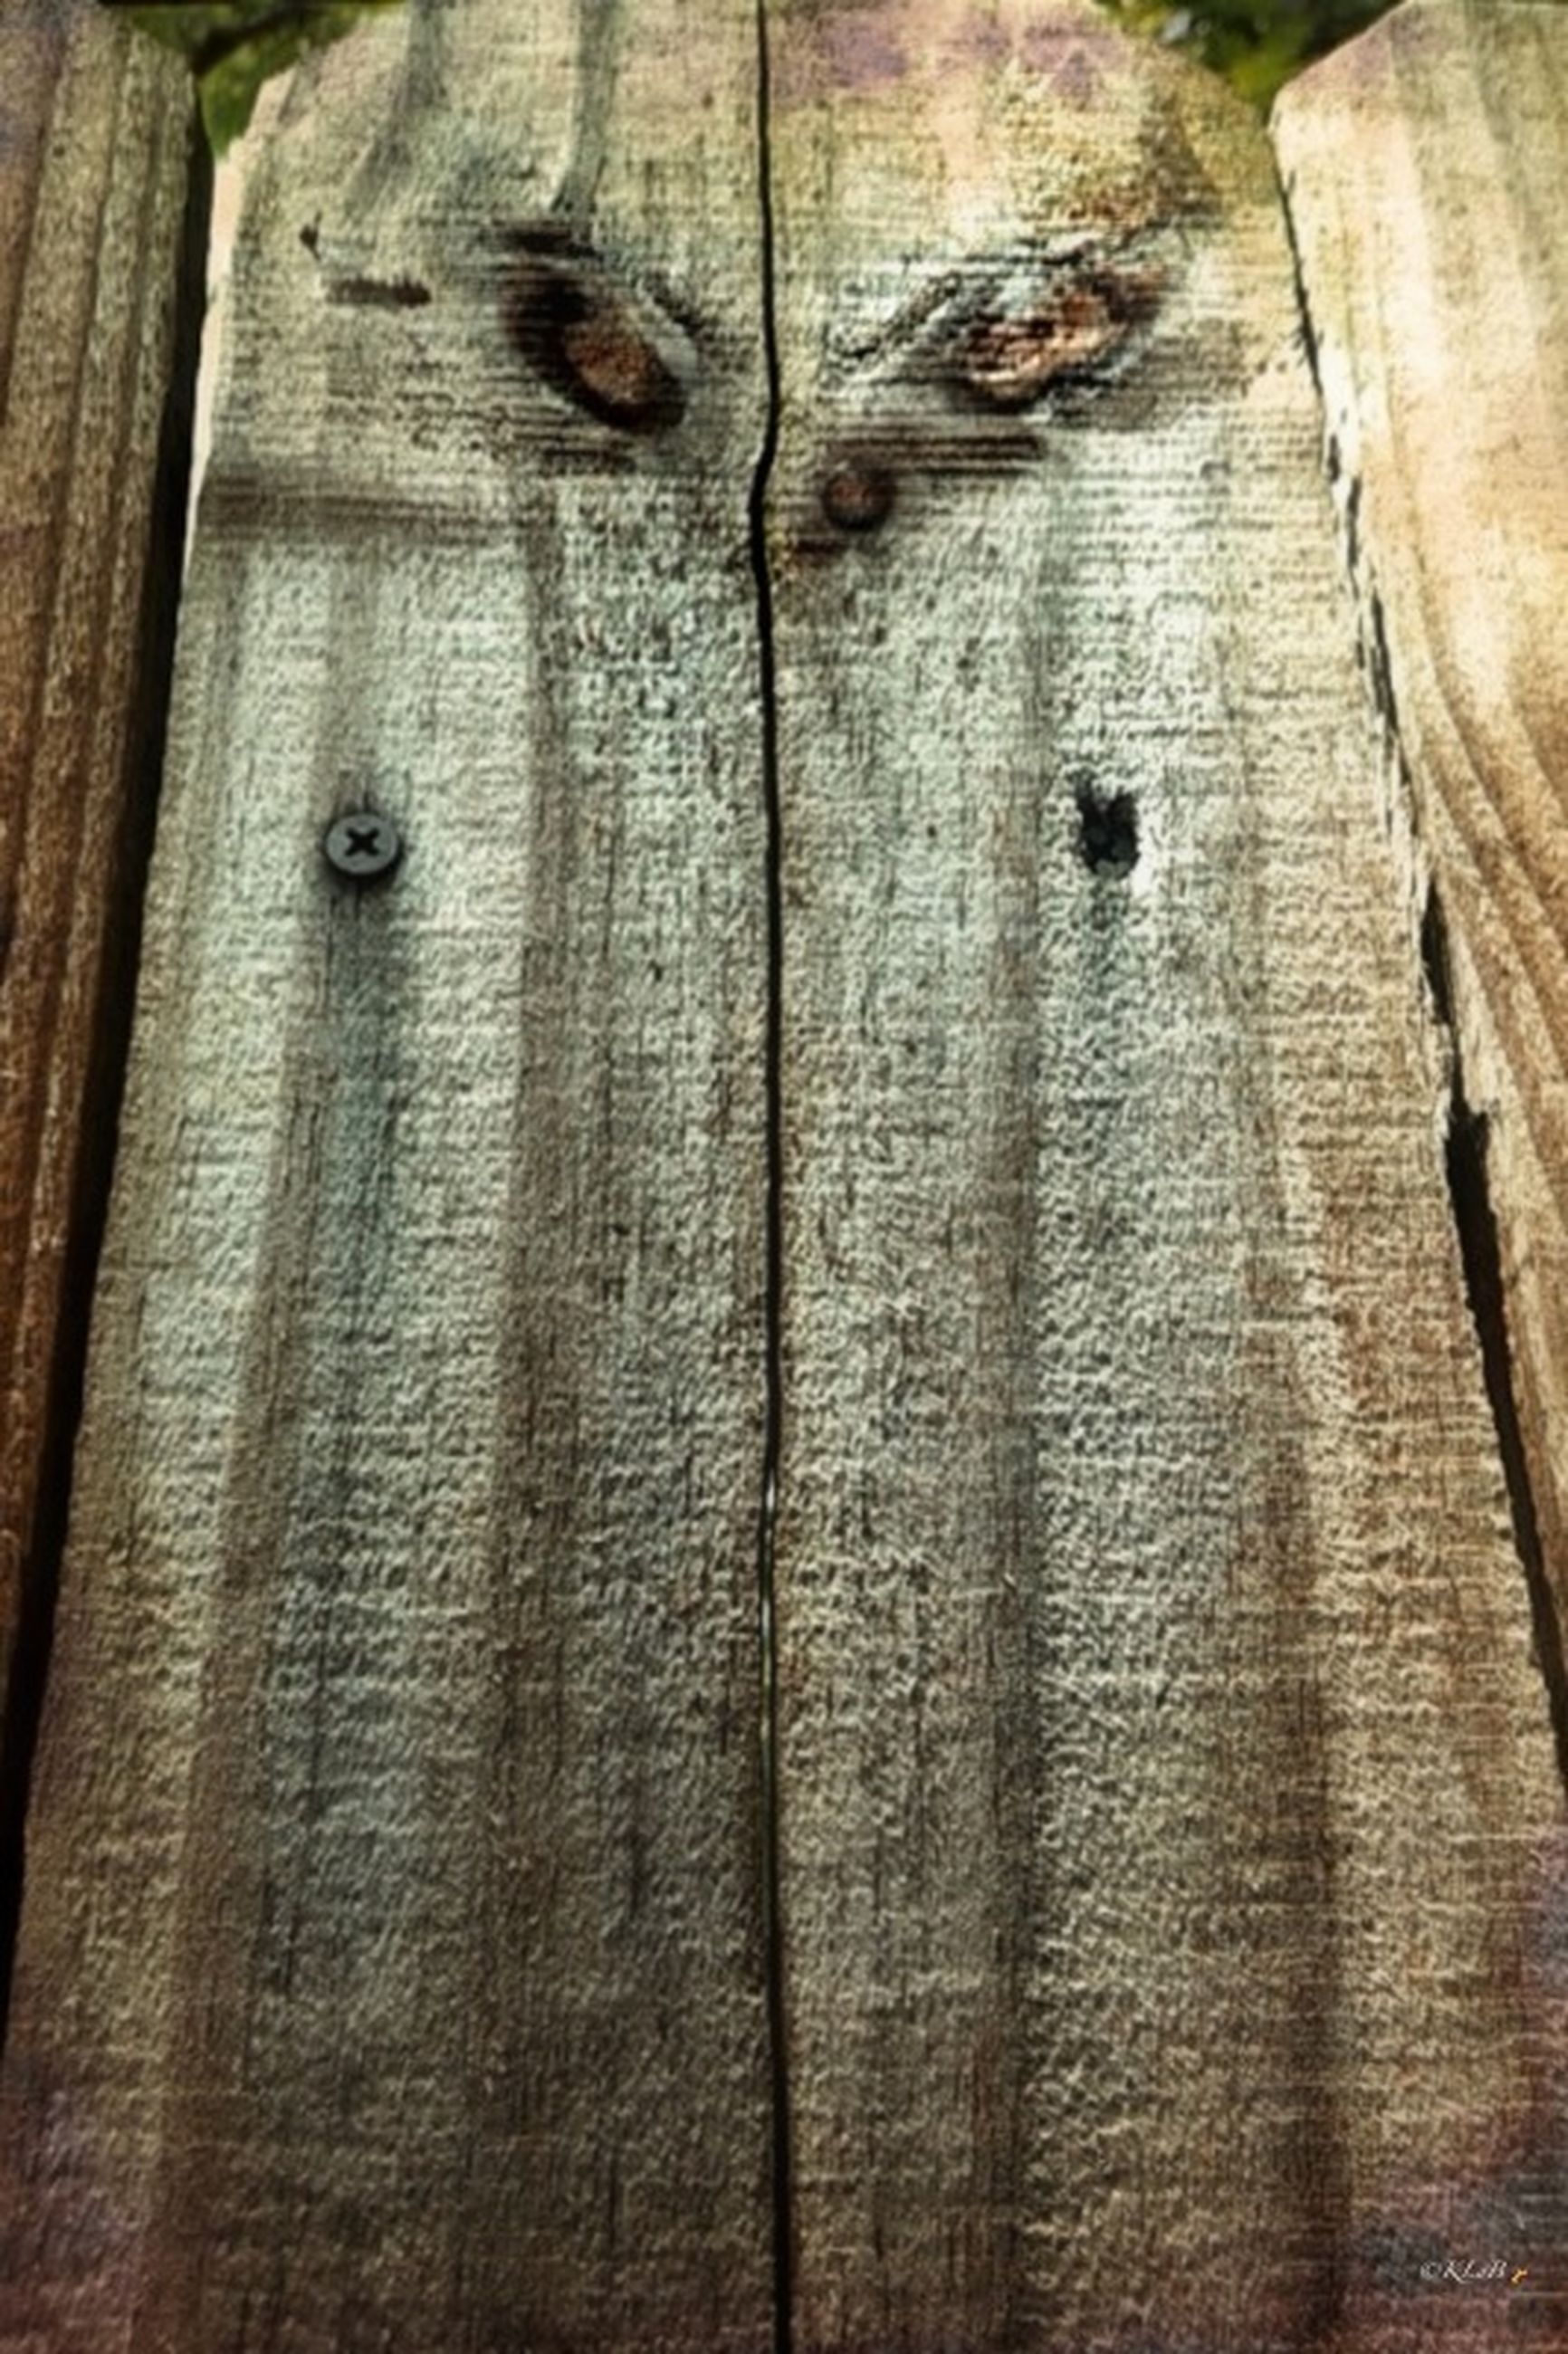 full frame, wood - material, backgrounds, wooden, textured, wood, plank, pattern, built structure, close-up, weathered, architecture, brown, old, low angle view, building exterior, detail, door, outdoors, day